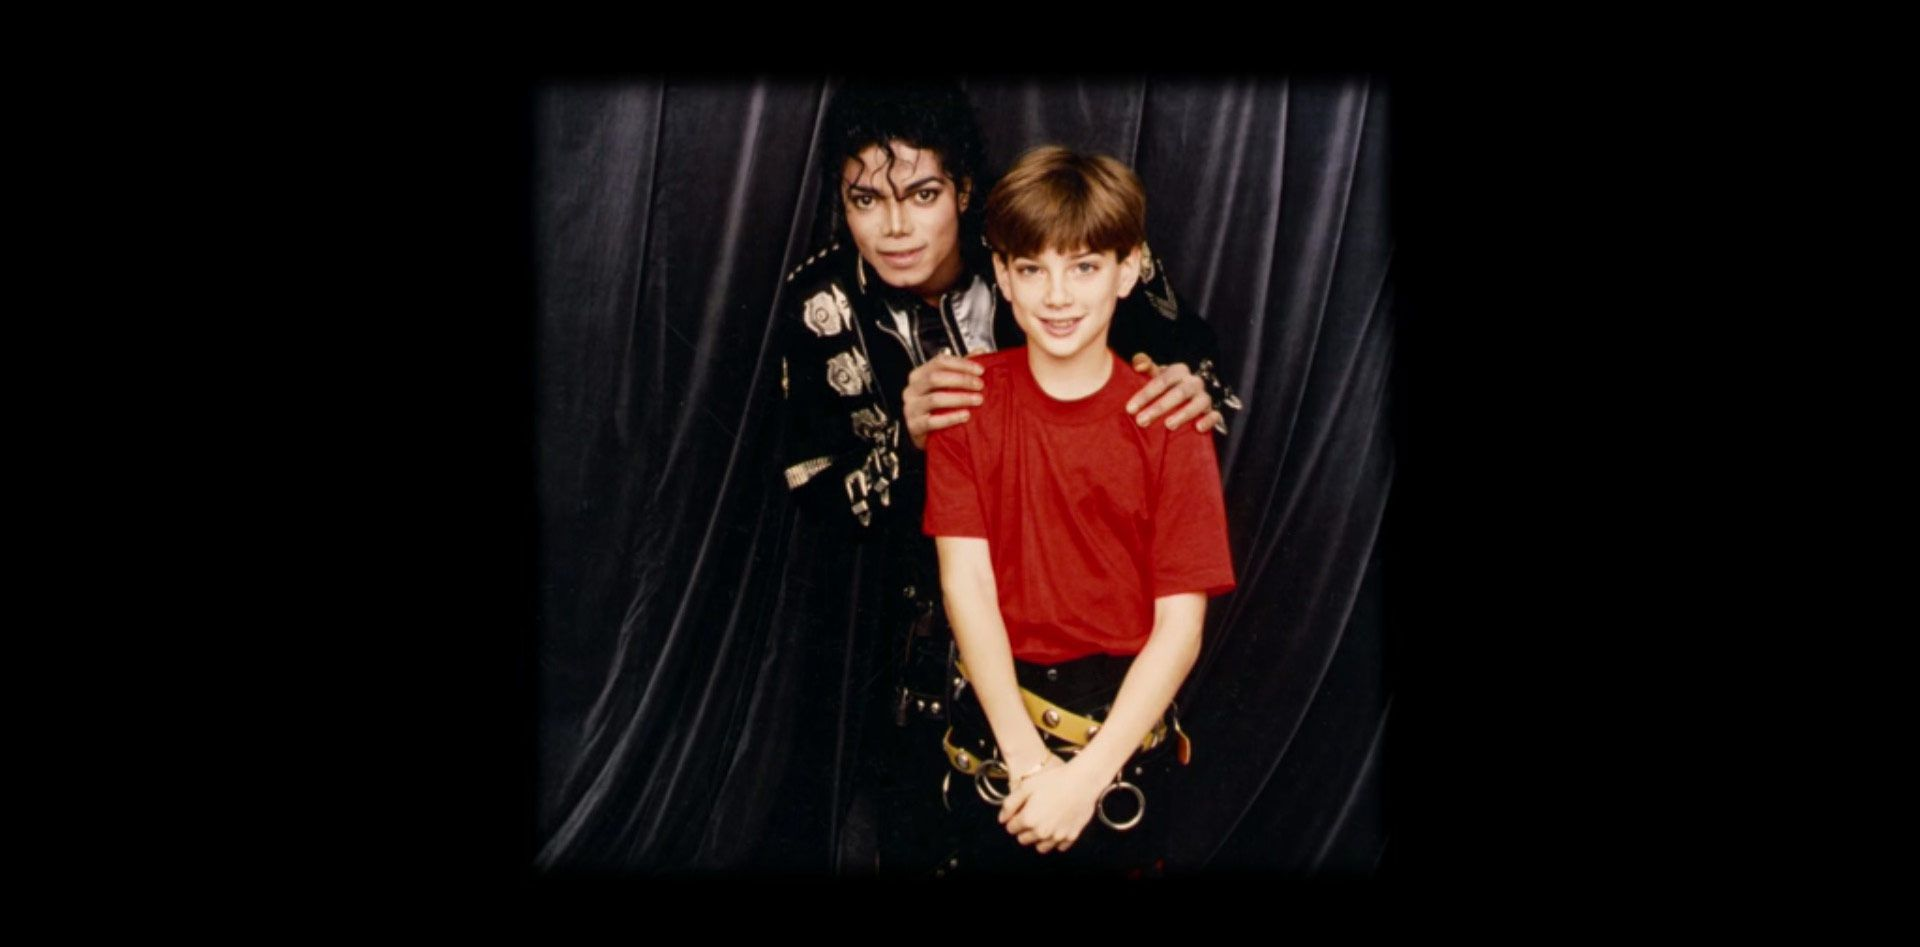 Michael Jackson and Jimmy Safechuck in Leaving Neverland: The Aftermath (2019)